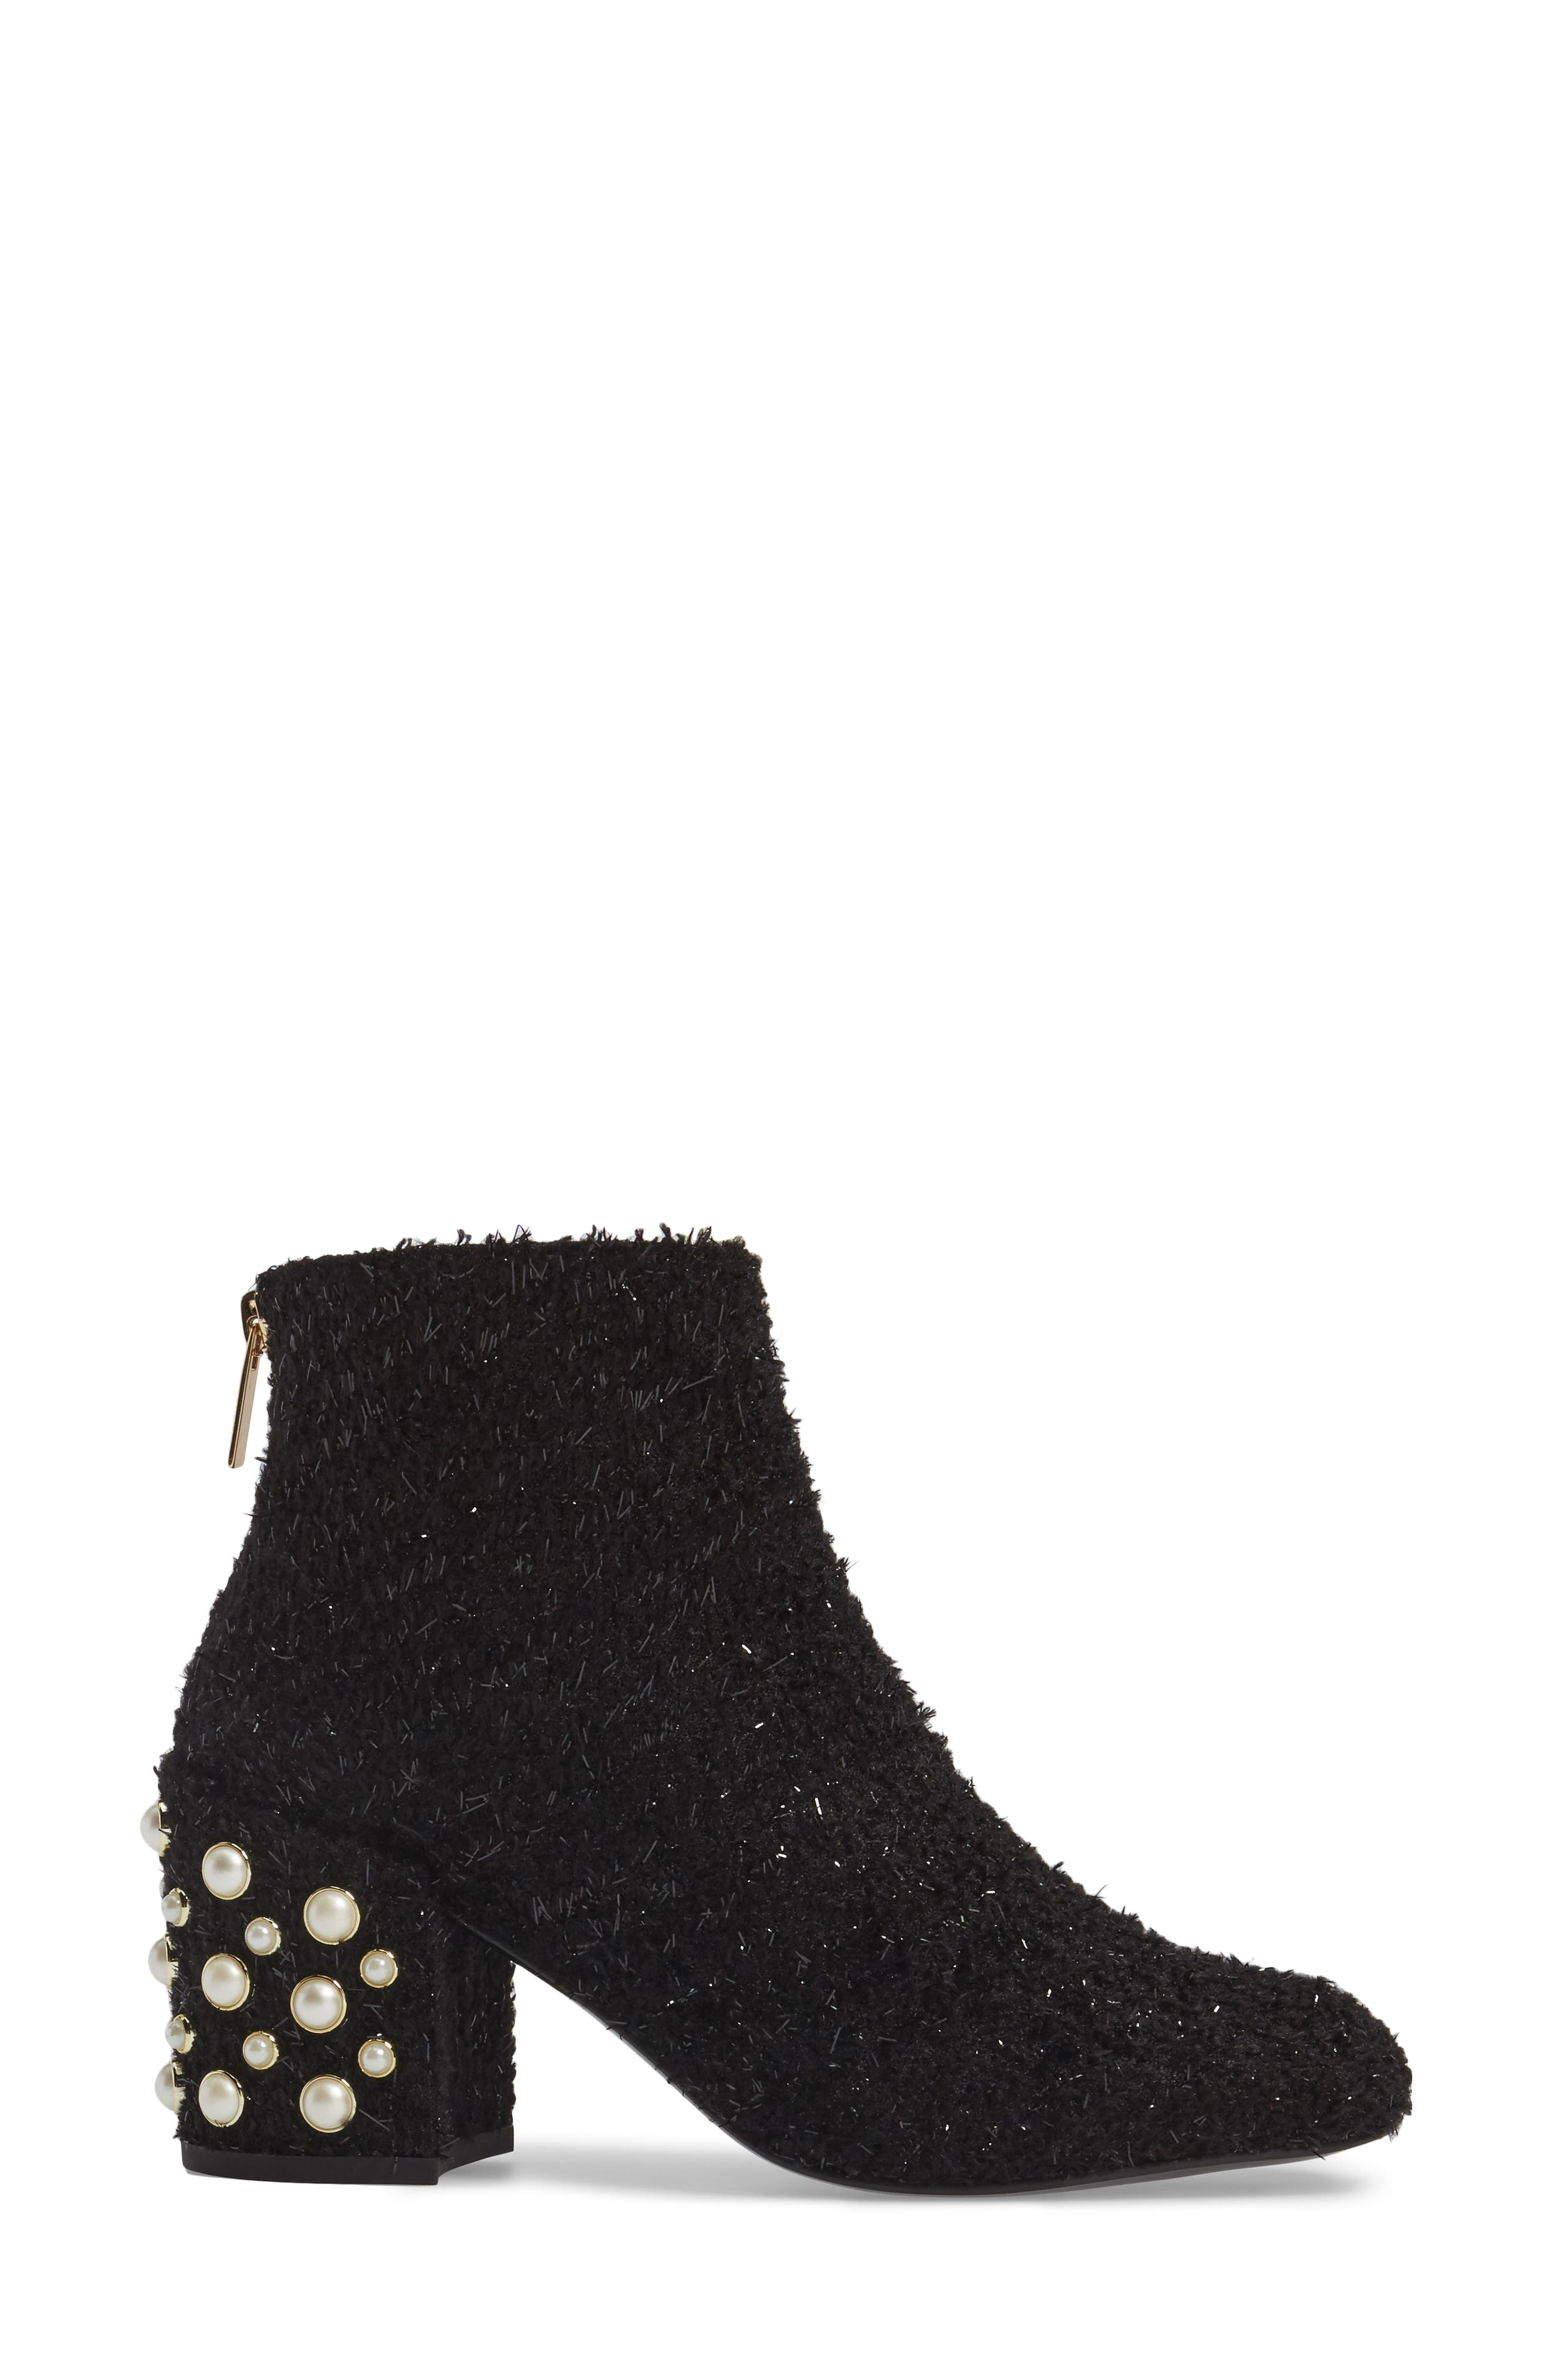 Pearlbacari Bootie,                             Alternate thumbnail 3, color,                             Black Boucle